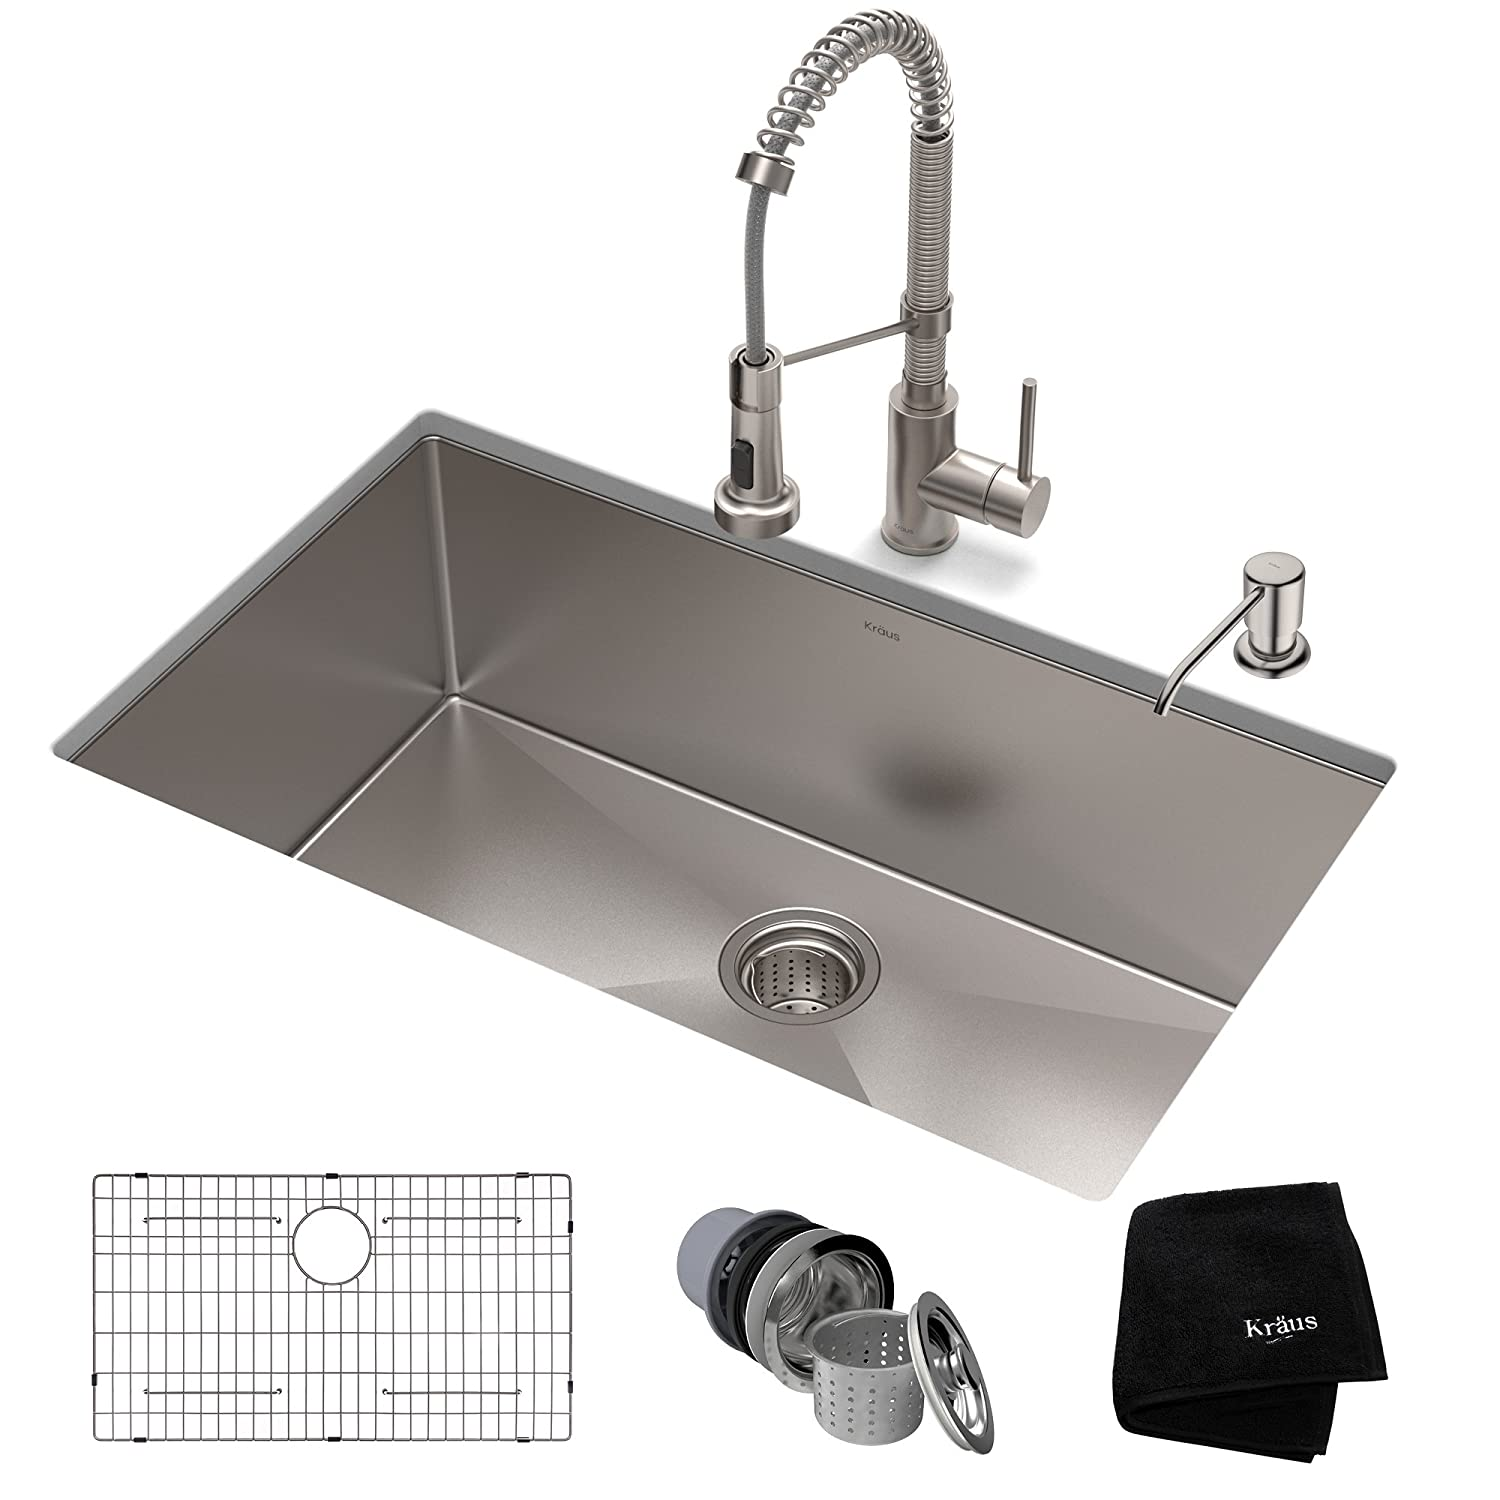 KRAUS KHU100-32-1610-53SS Set with Standart PRO Sink and Bolden Commercial Pull Faucet in Stainless Steel Kitchen Sink & Faucet Combo 32 Inch